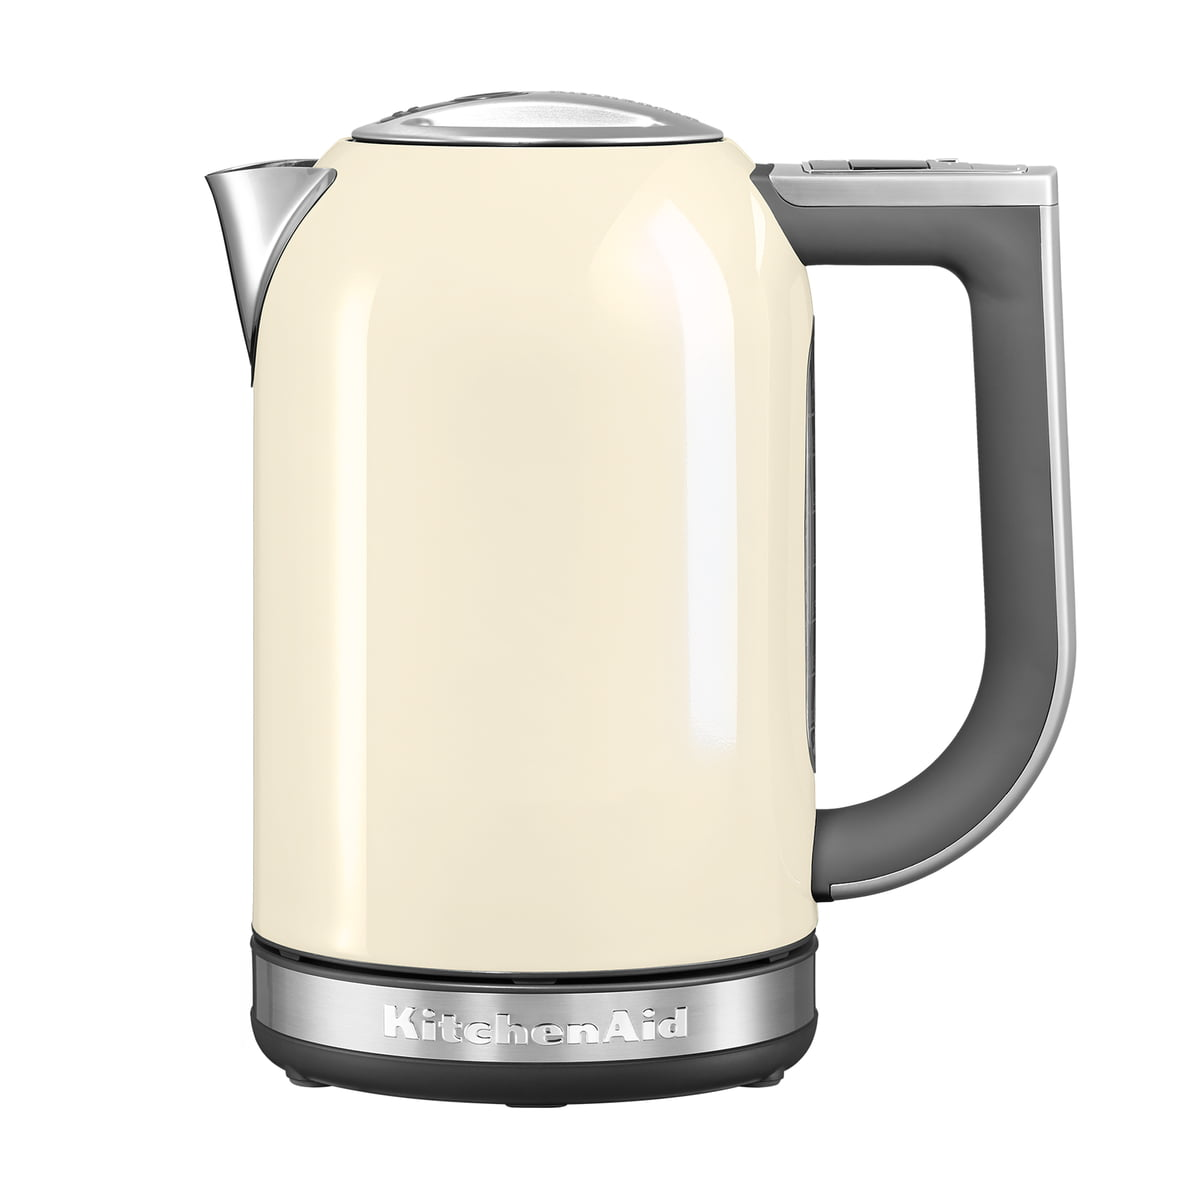 The Electric Kettle 5KEK1722 by KitchenAid